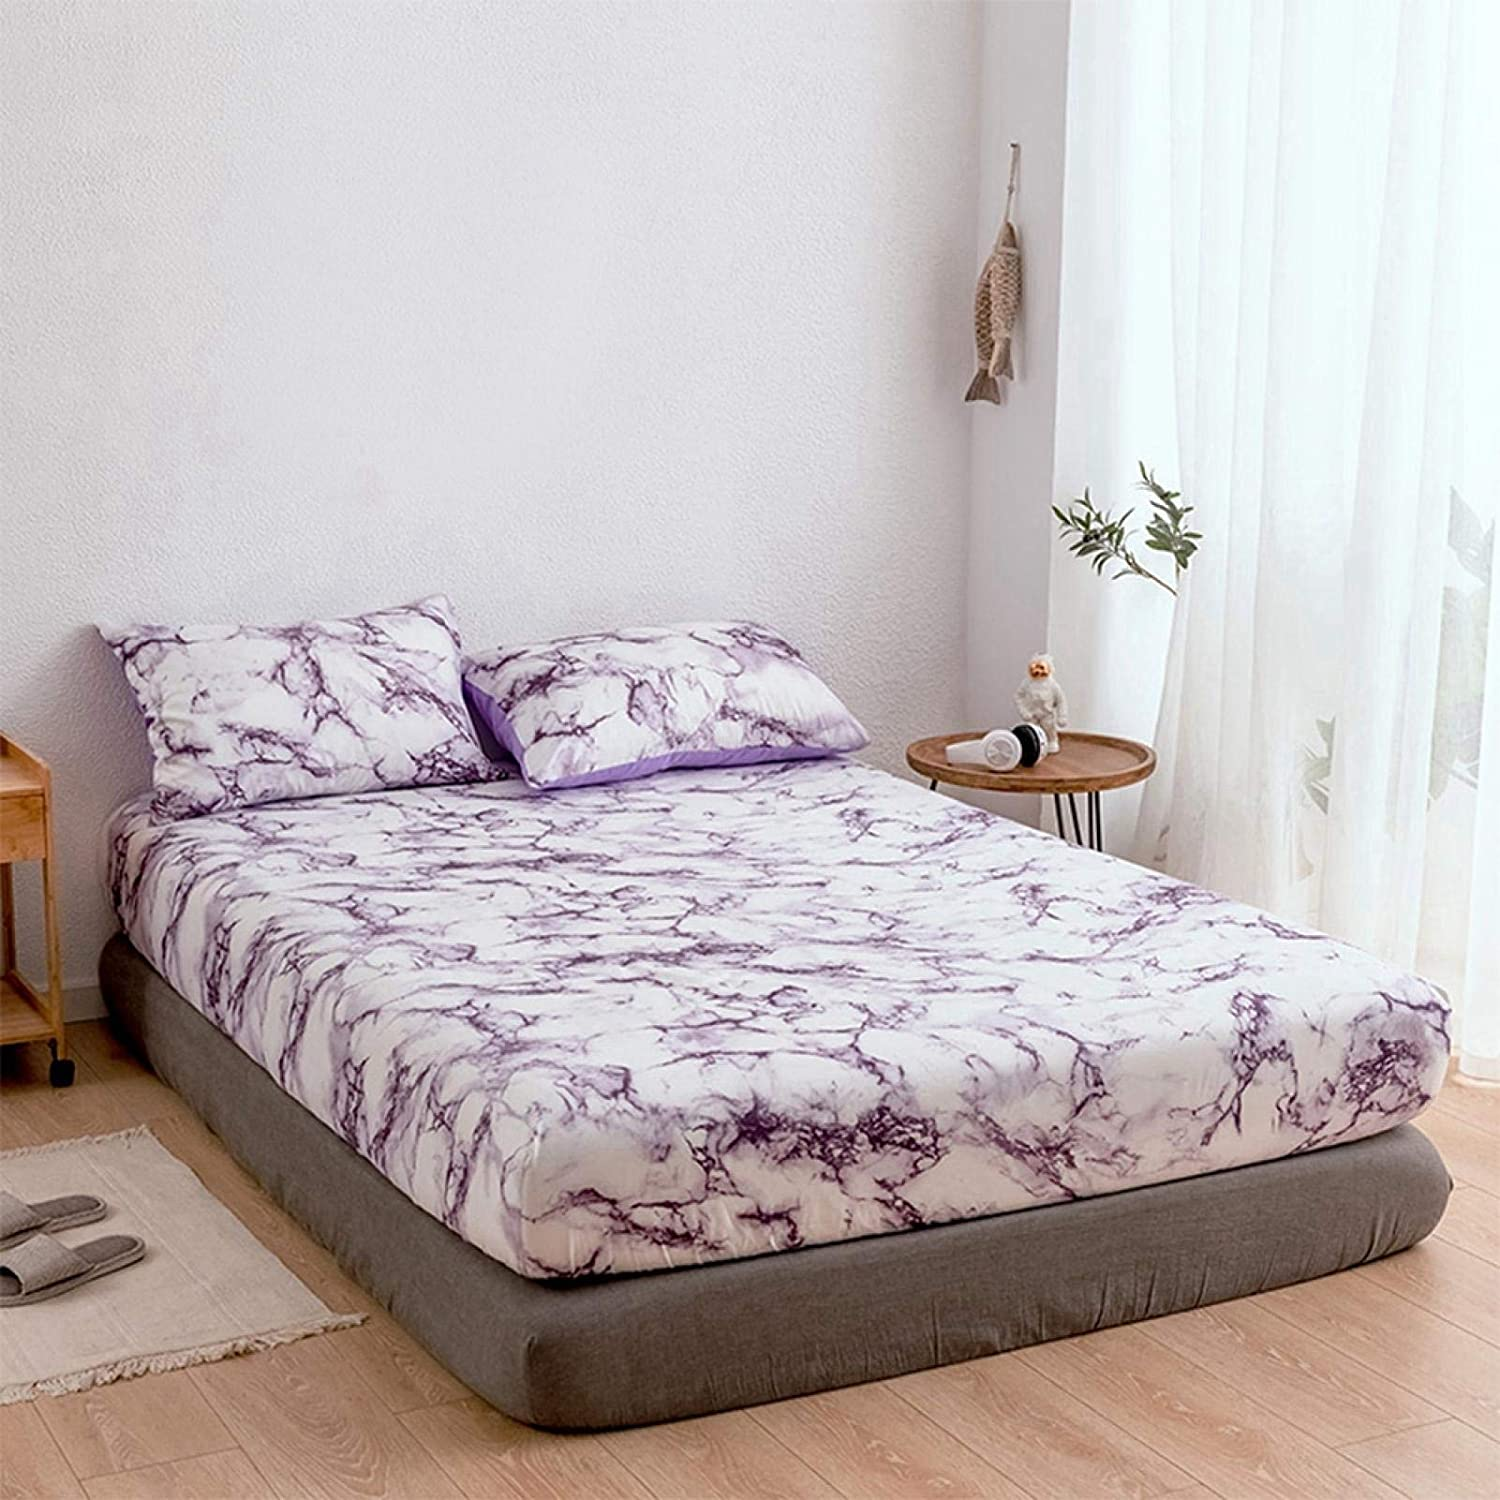 Demeras Regular dealer Fitted Sheet Durable Comfortable Comfortabl Animer and price revision